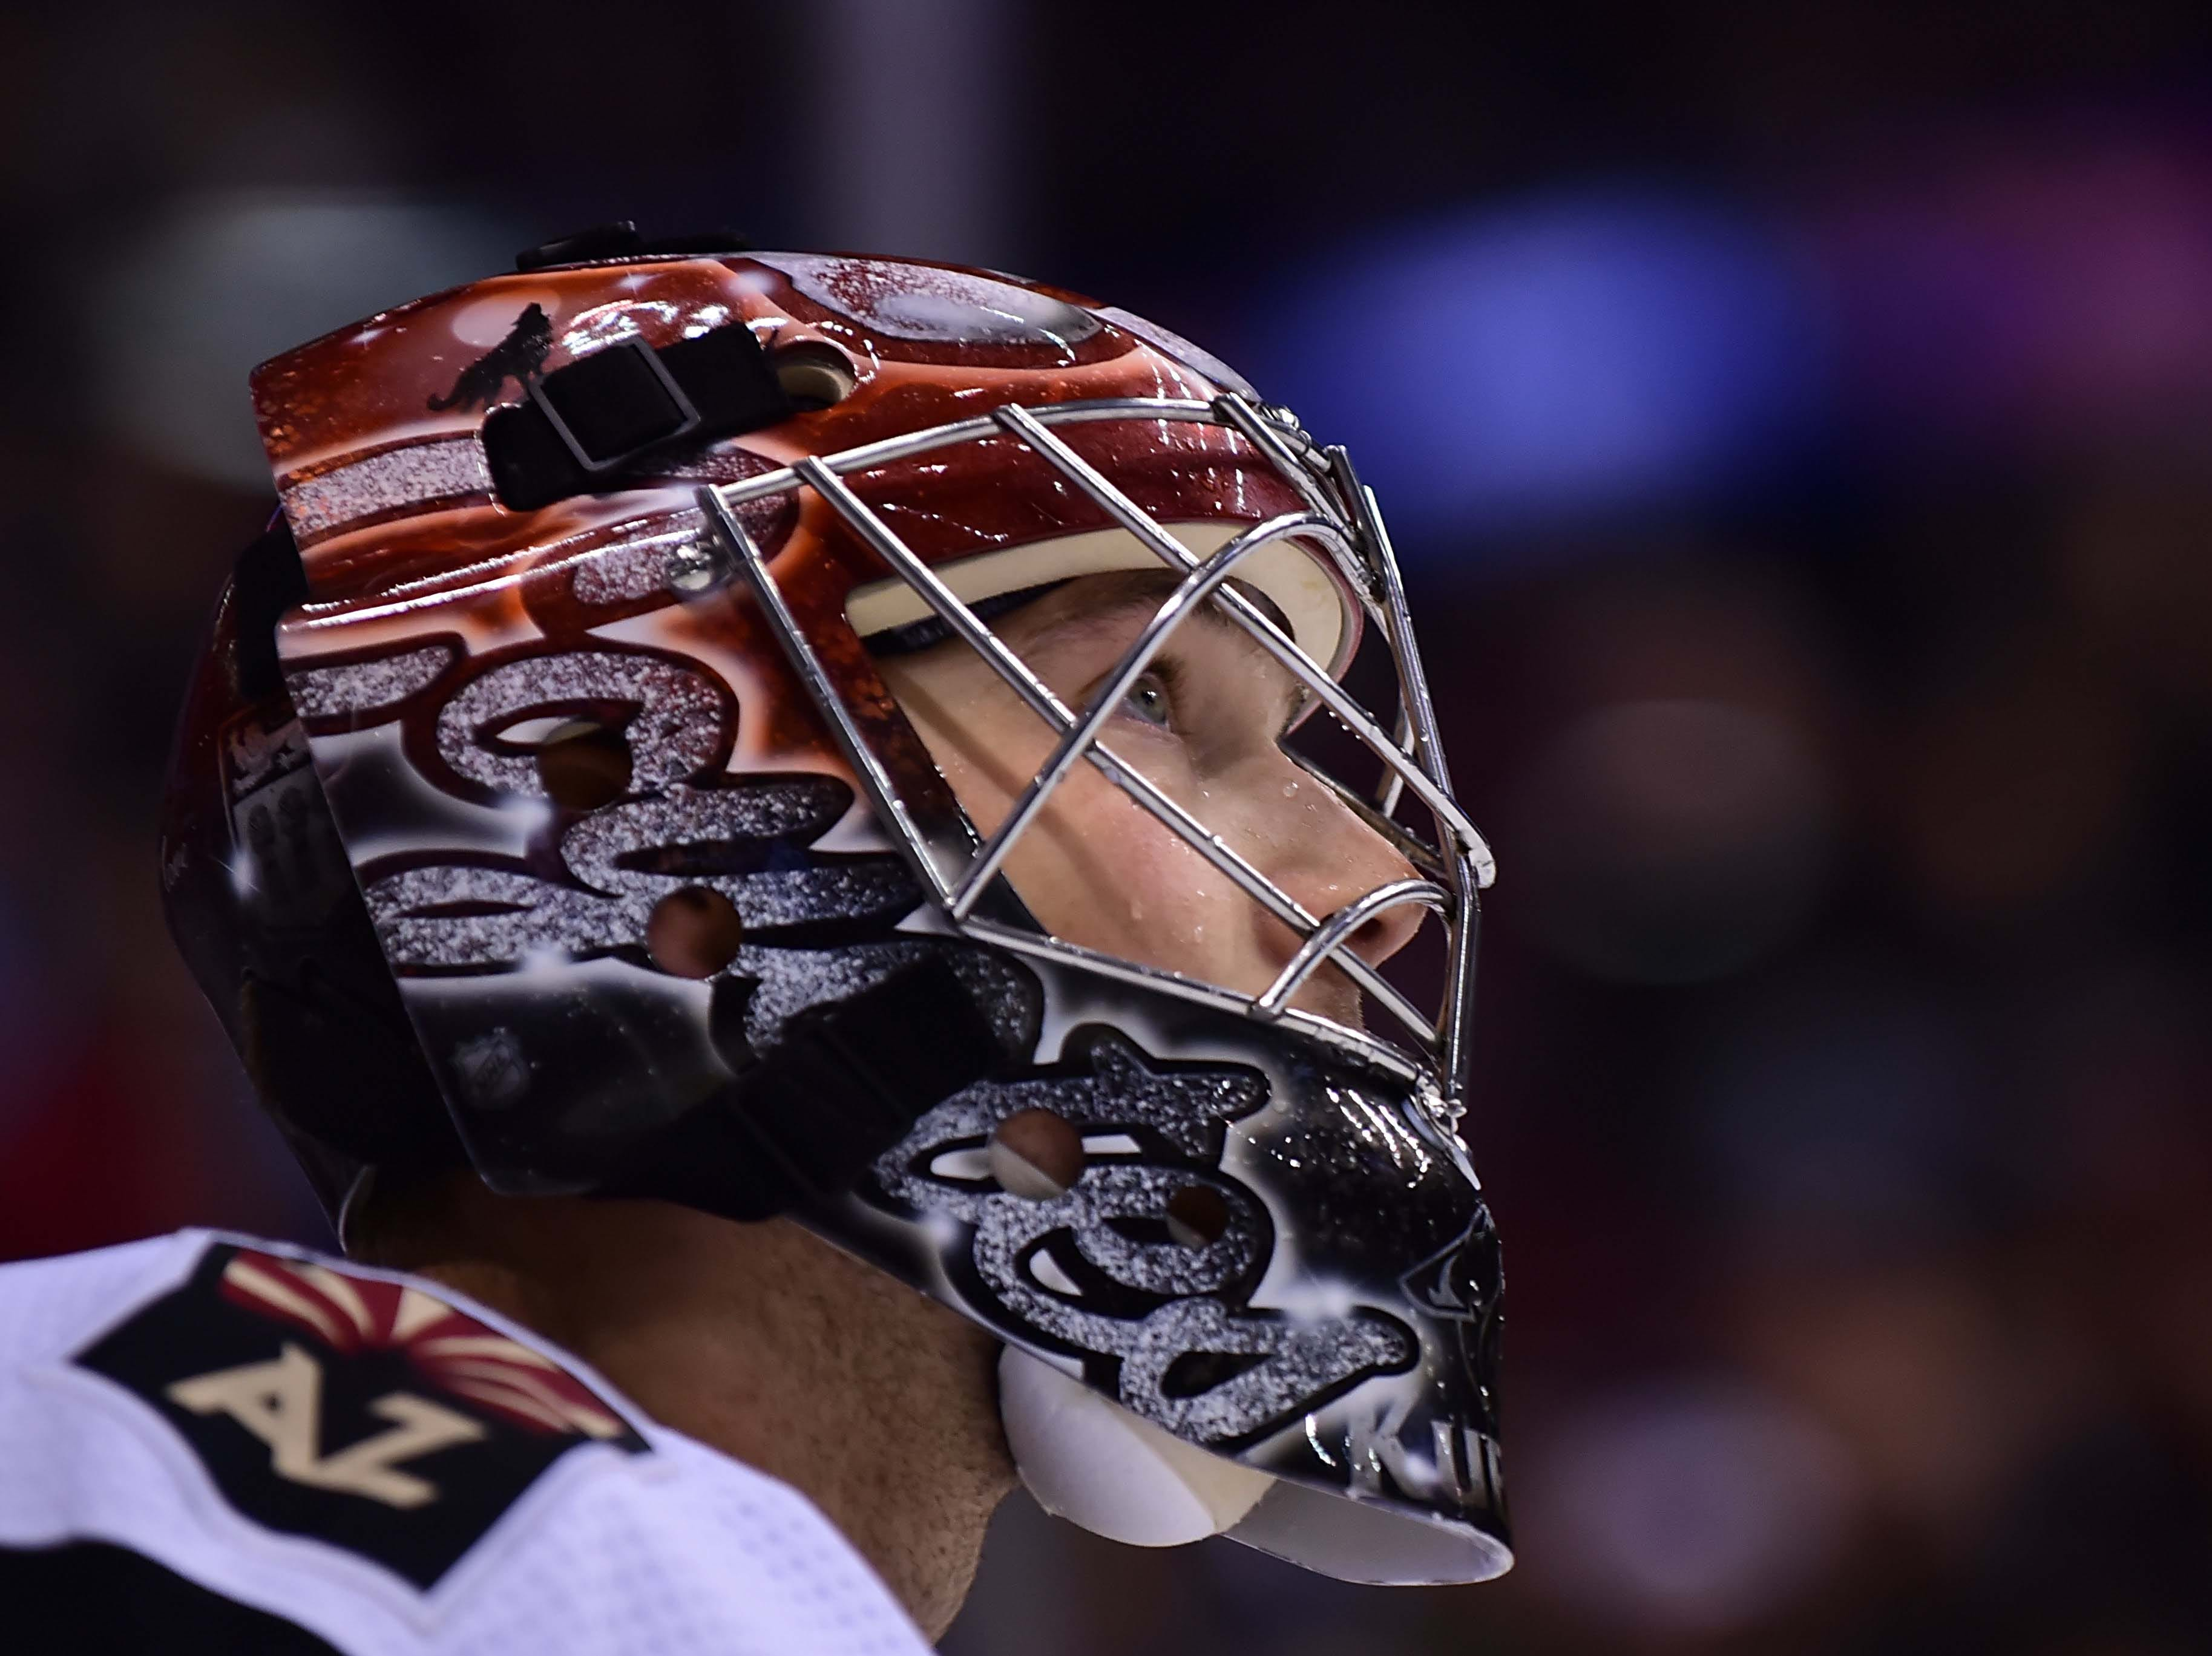 Feb 21, 2019; Vancouver, British Columbia, CAN; Arizona Coyotes goaltender Darcy Kuemper (35) awaits the start of play against the Vancouver Canucks during the first period at Rogers Arena. Mandatory Credit: Anne-Marie Sorvin-USA TODAY Sports